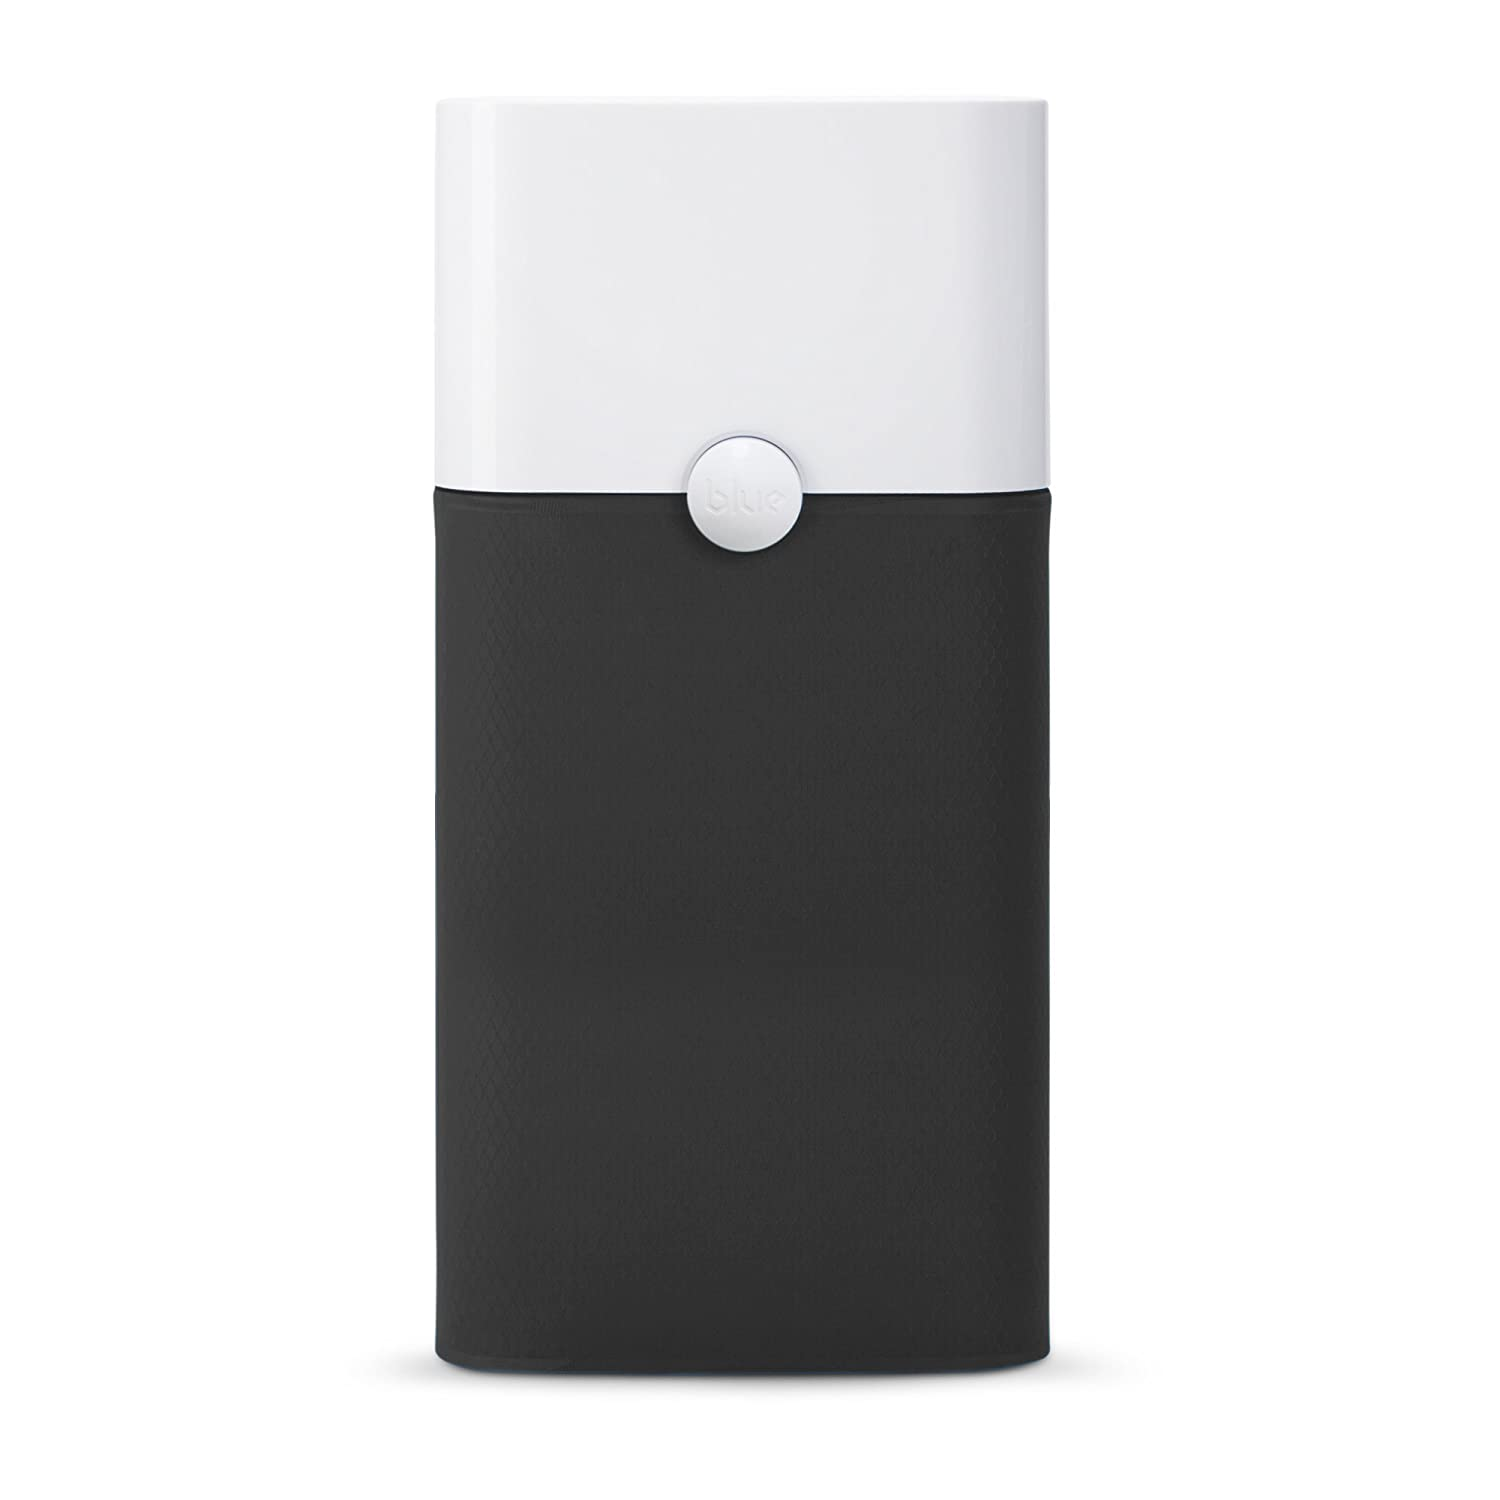 Blue Pure 121 Air Purifier with Particle and Carbon Filter for Allergen and Odor Reduction